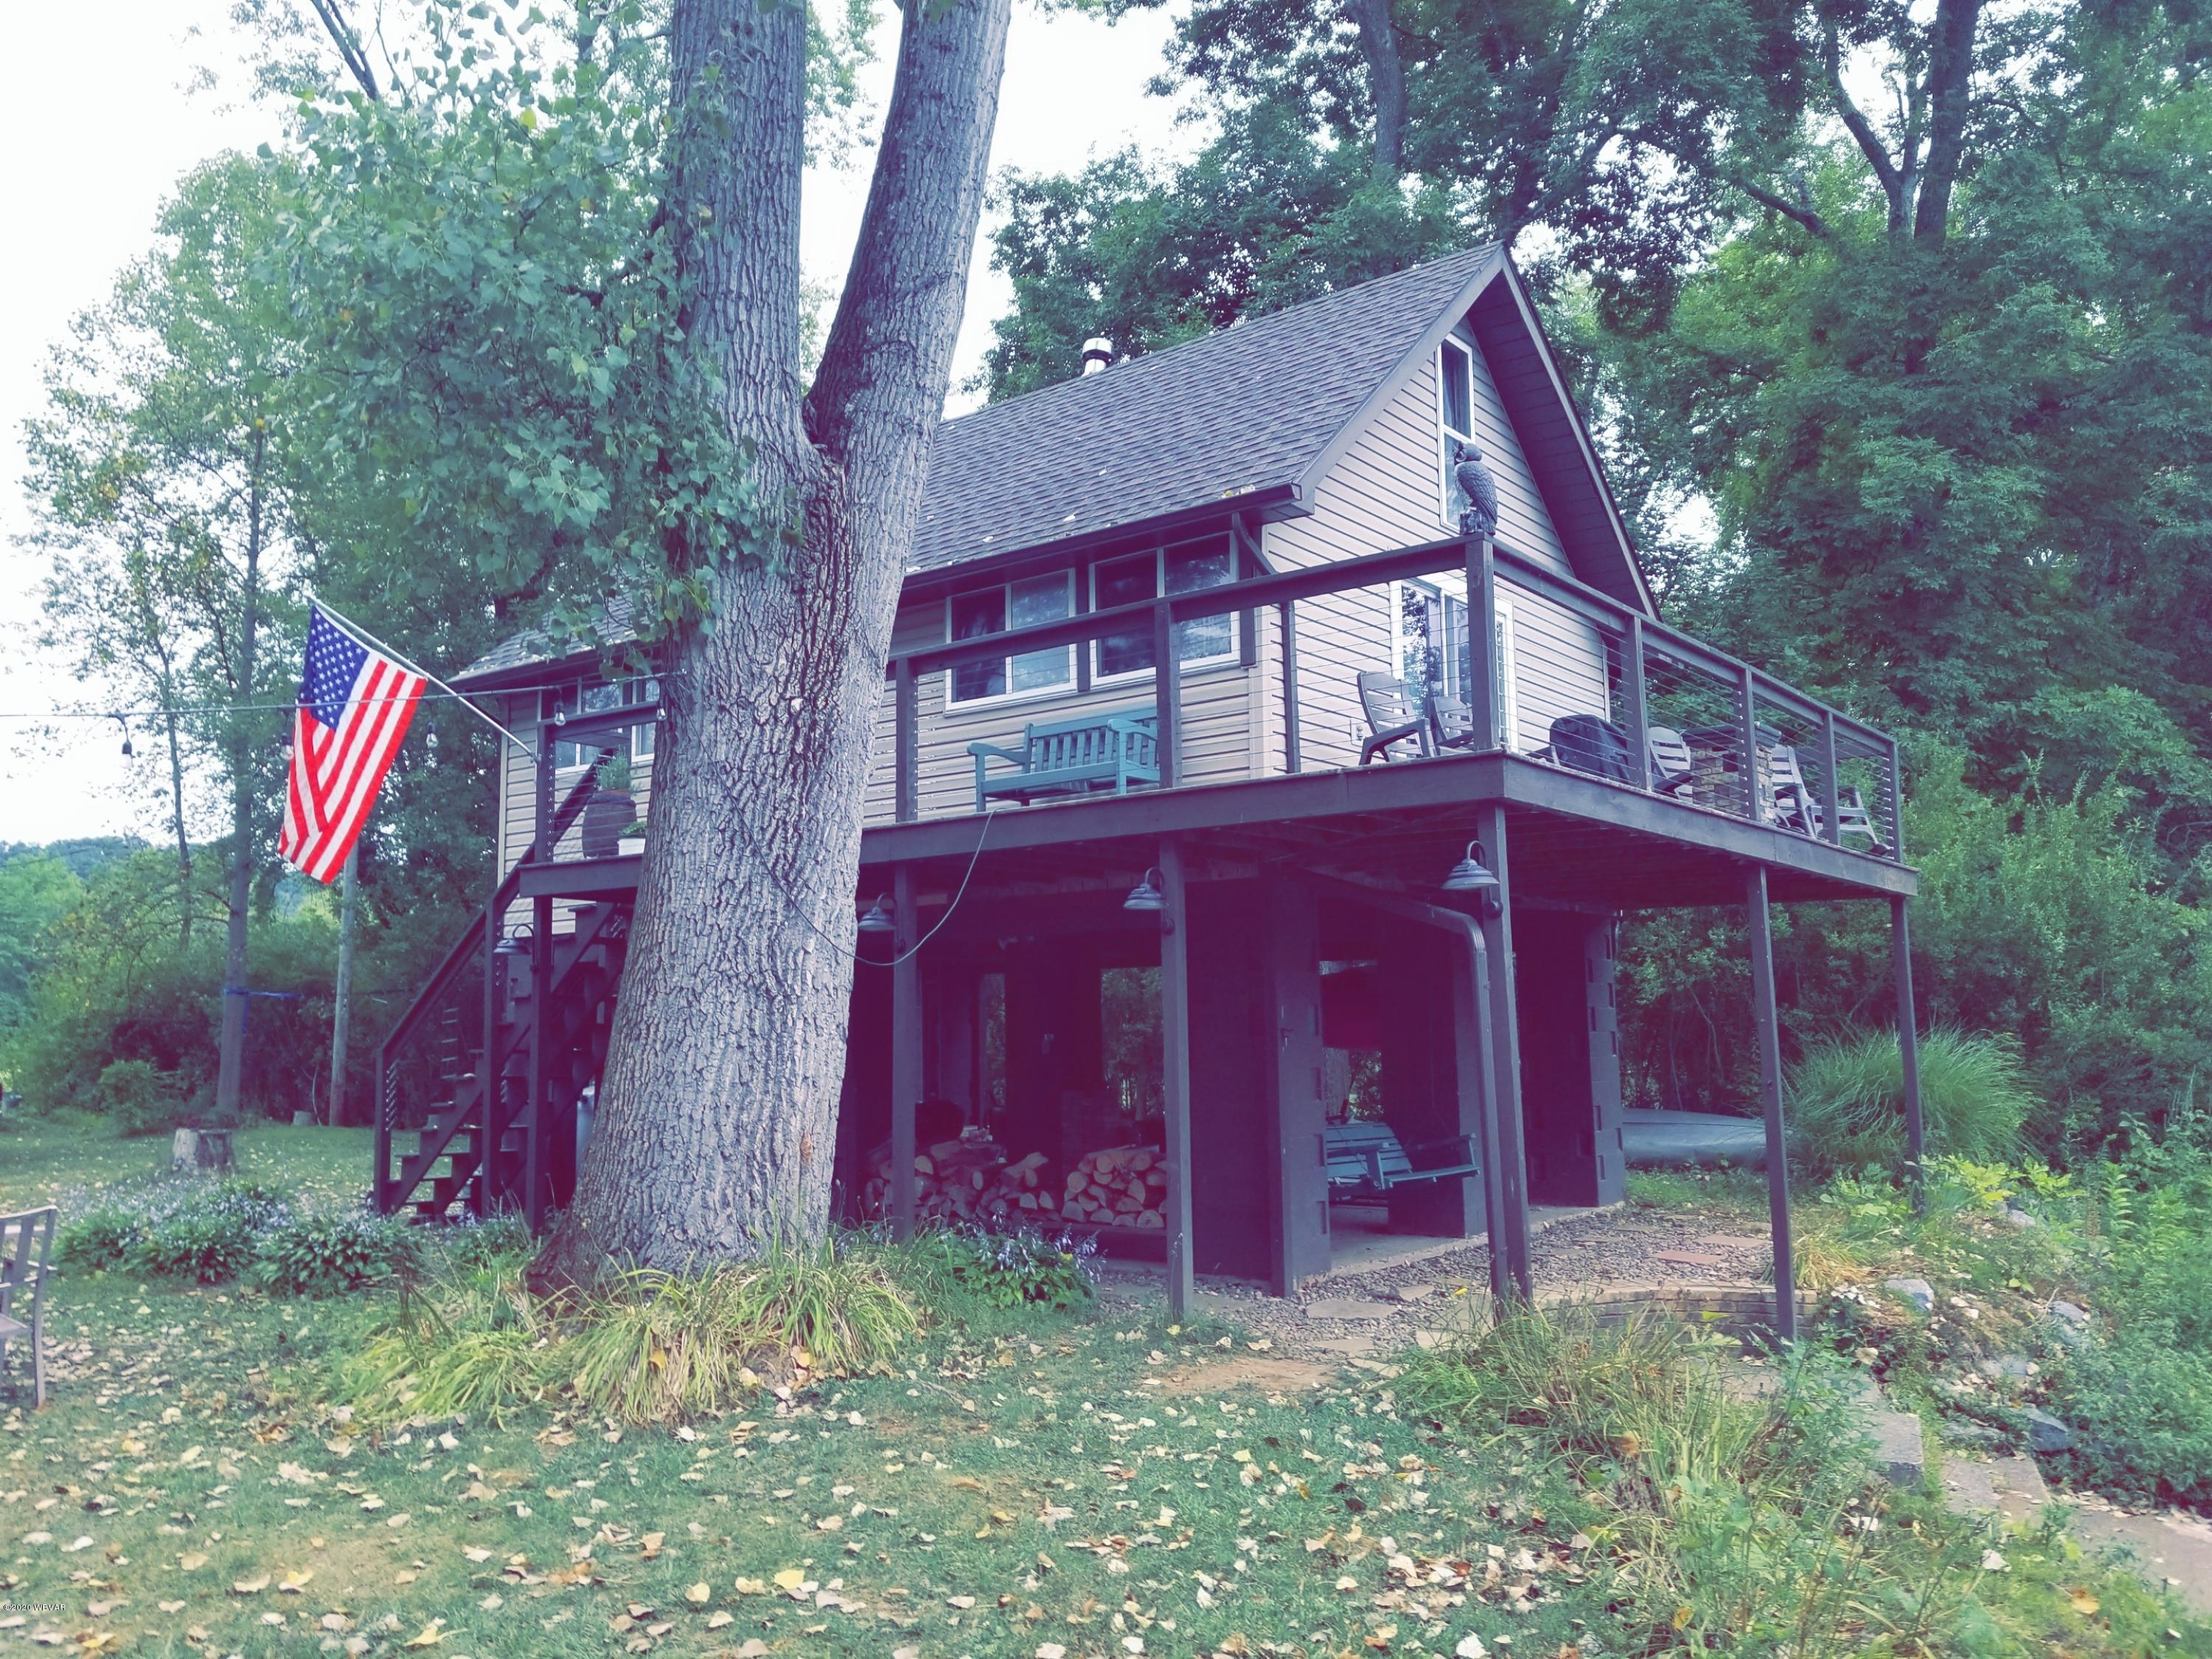 224 COTTAGE LANE, Mill Hall, PA 17751, 1 Bedroom Bedrooms, ,1 BathroomBathrooms,Residential,For sale,COTTAGE,WB-90995